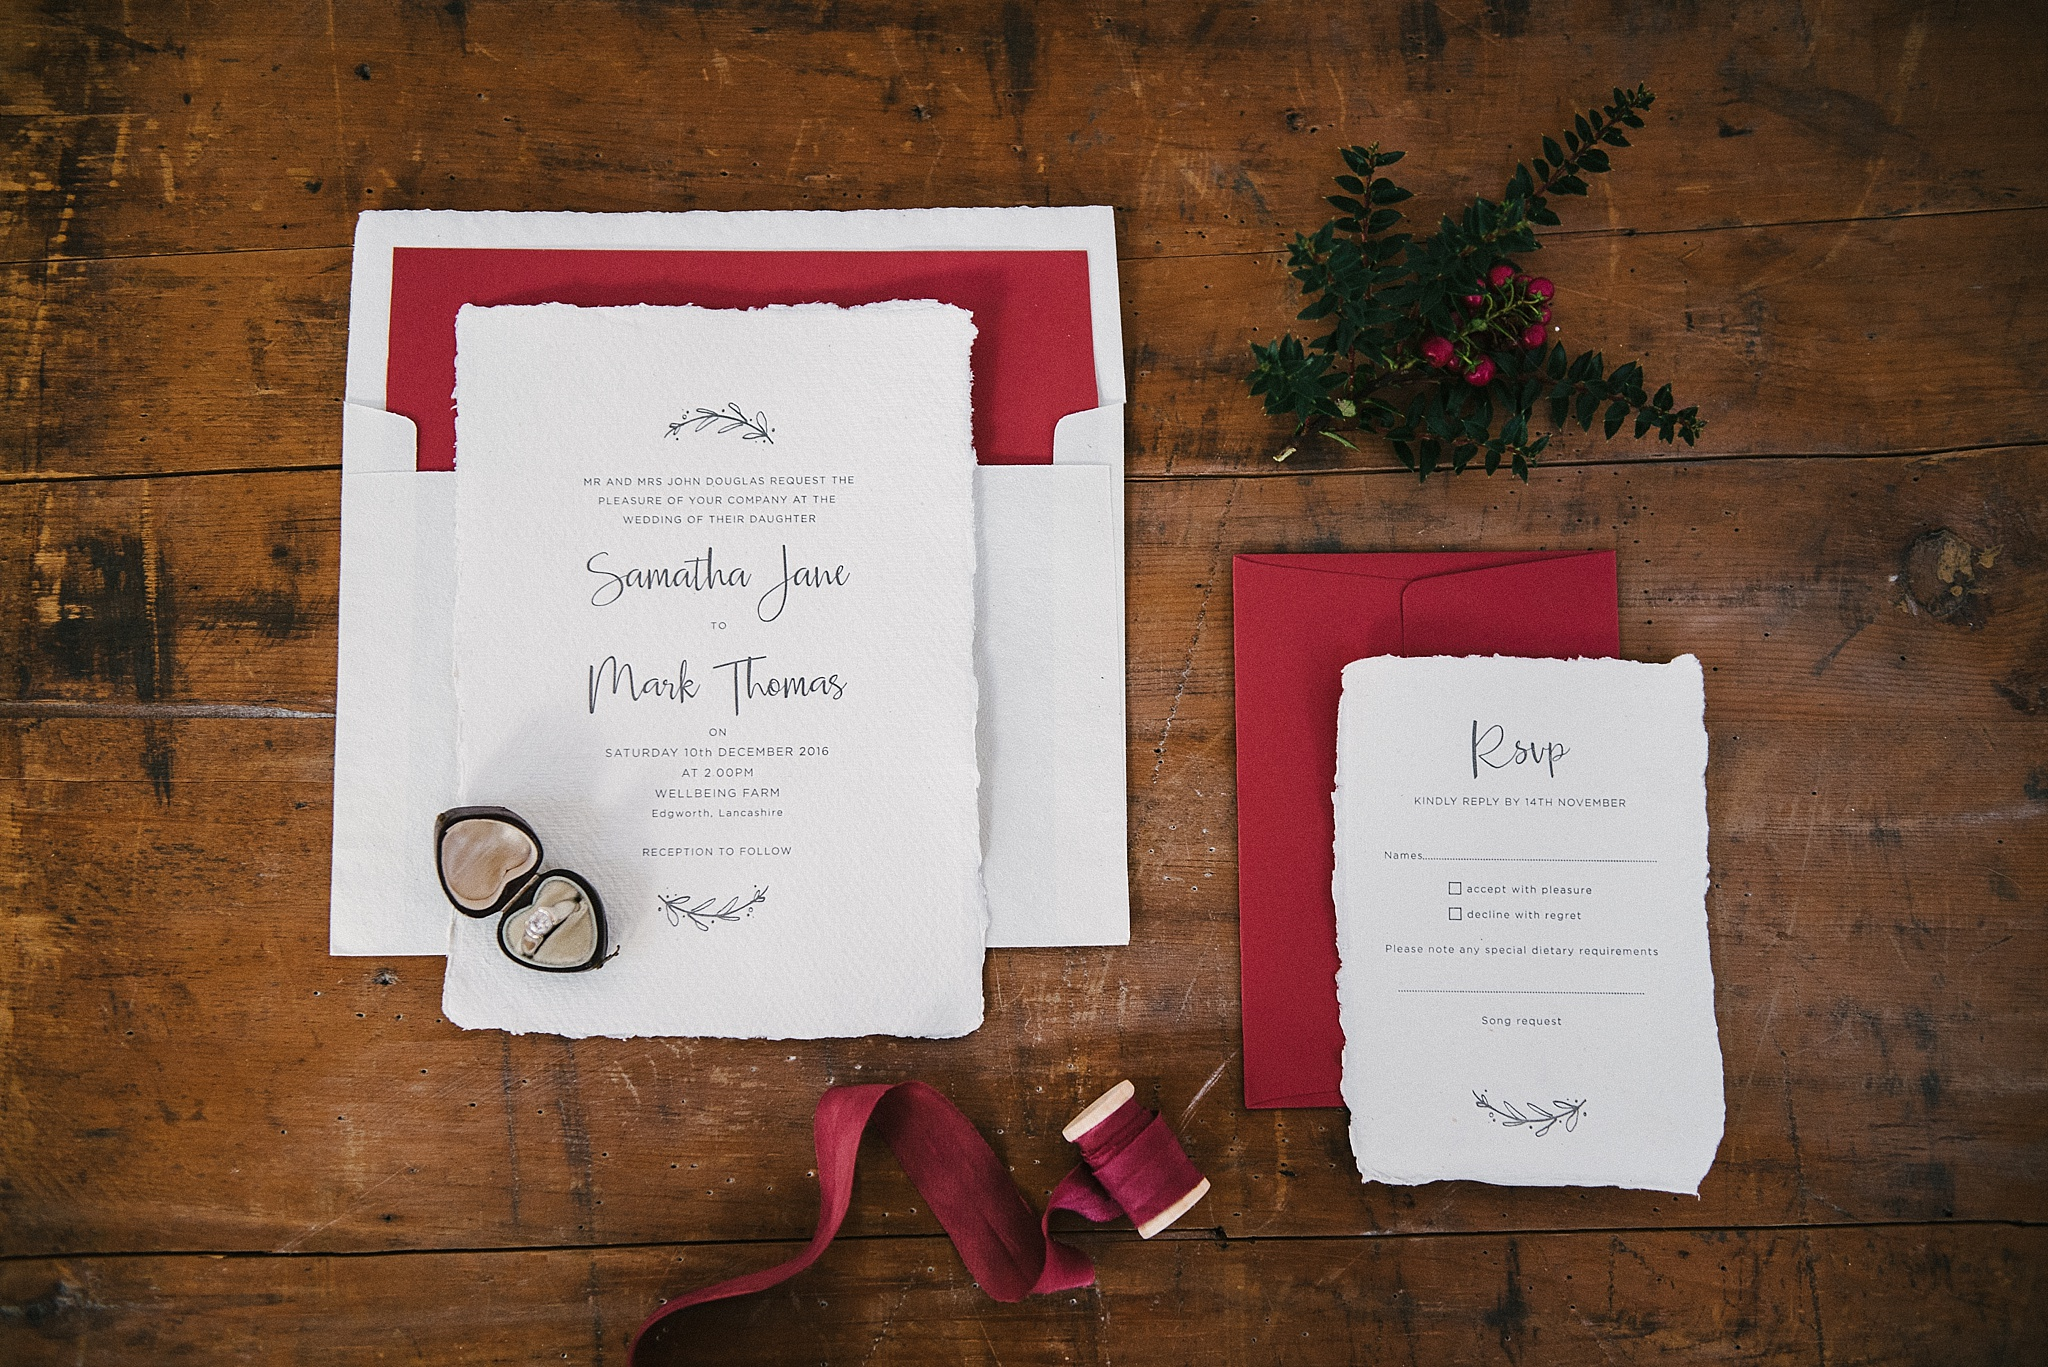 Letterpress wedding stationery for Print for Love in Lancashire.